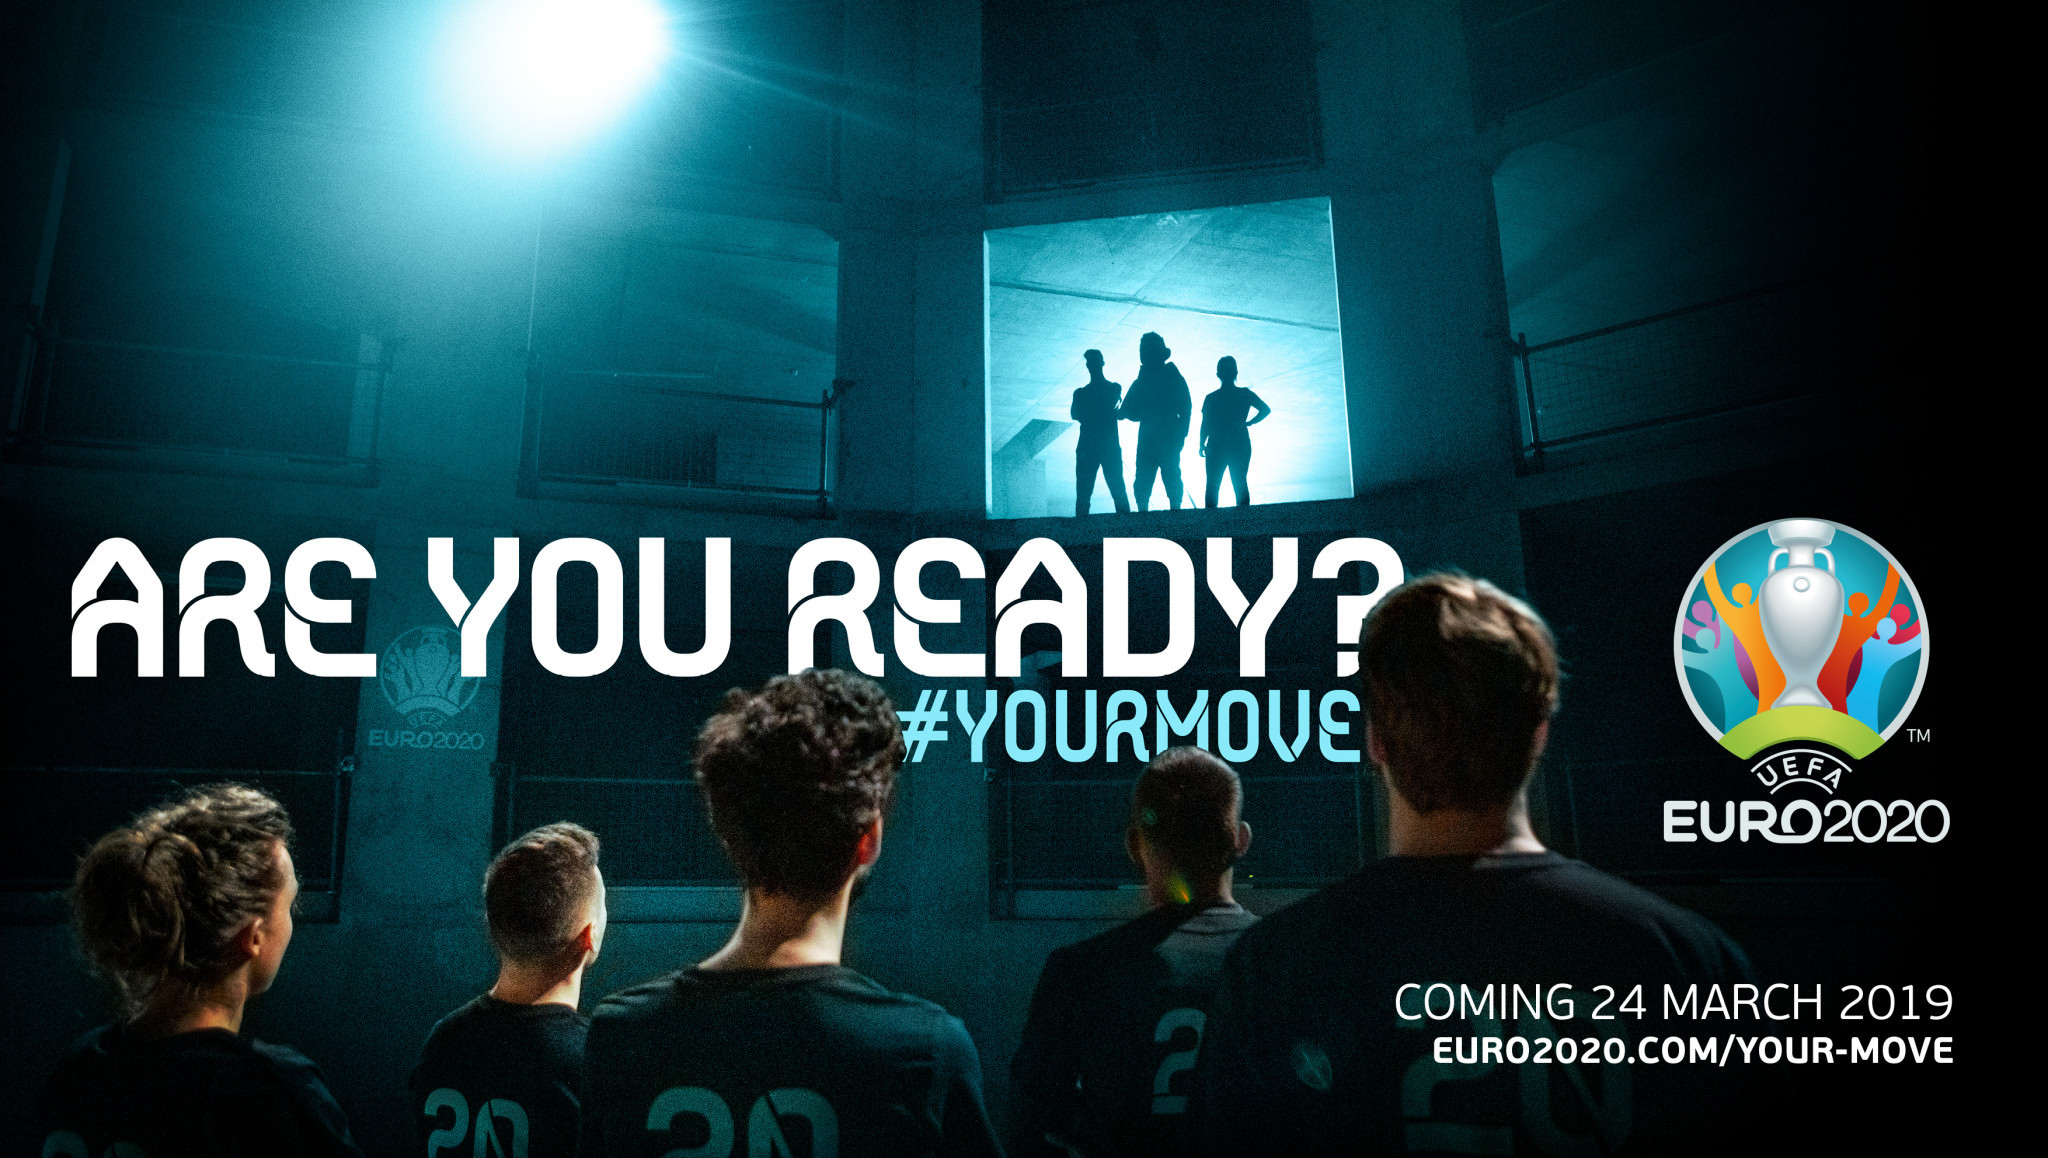 UEFA has launched a teaser trailer for their Euro 2020 mascot ©UEFA